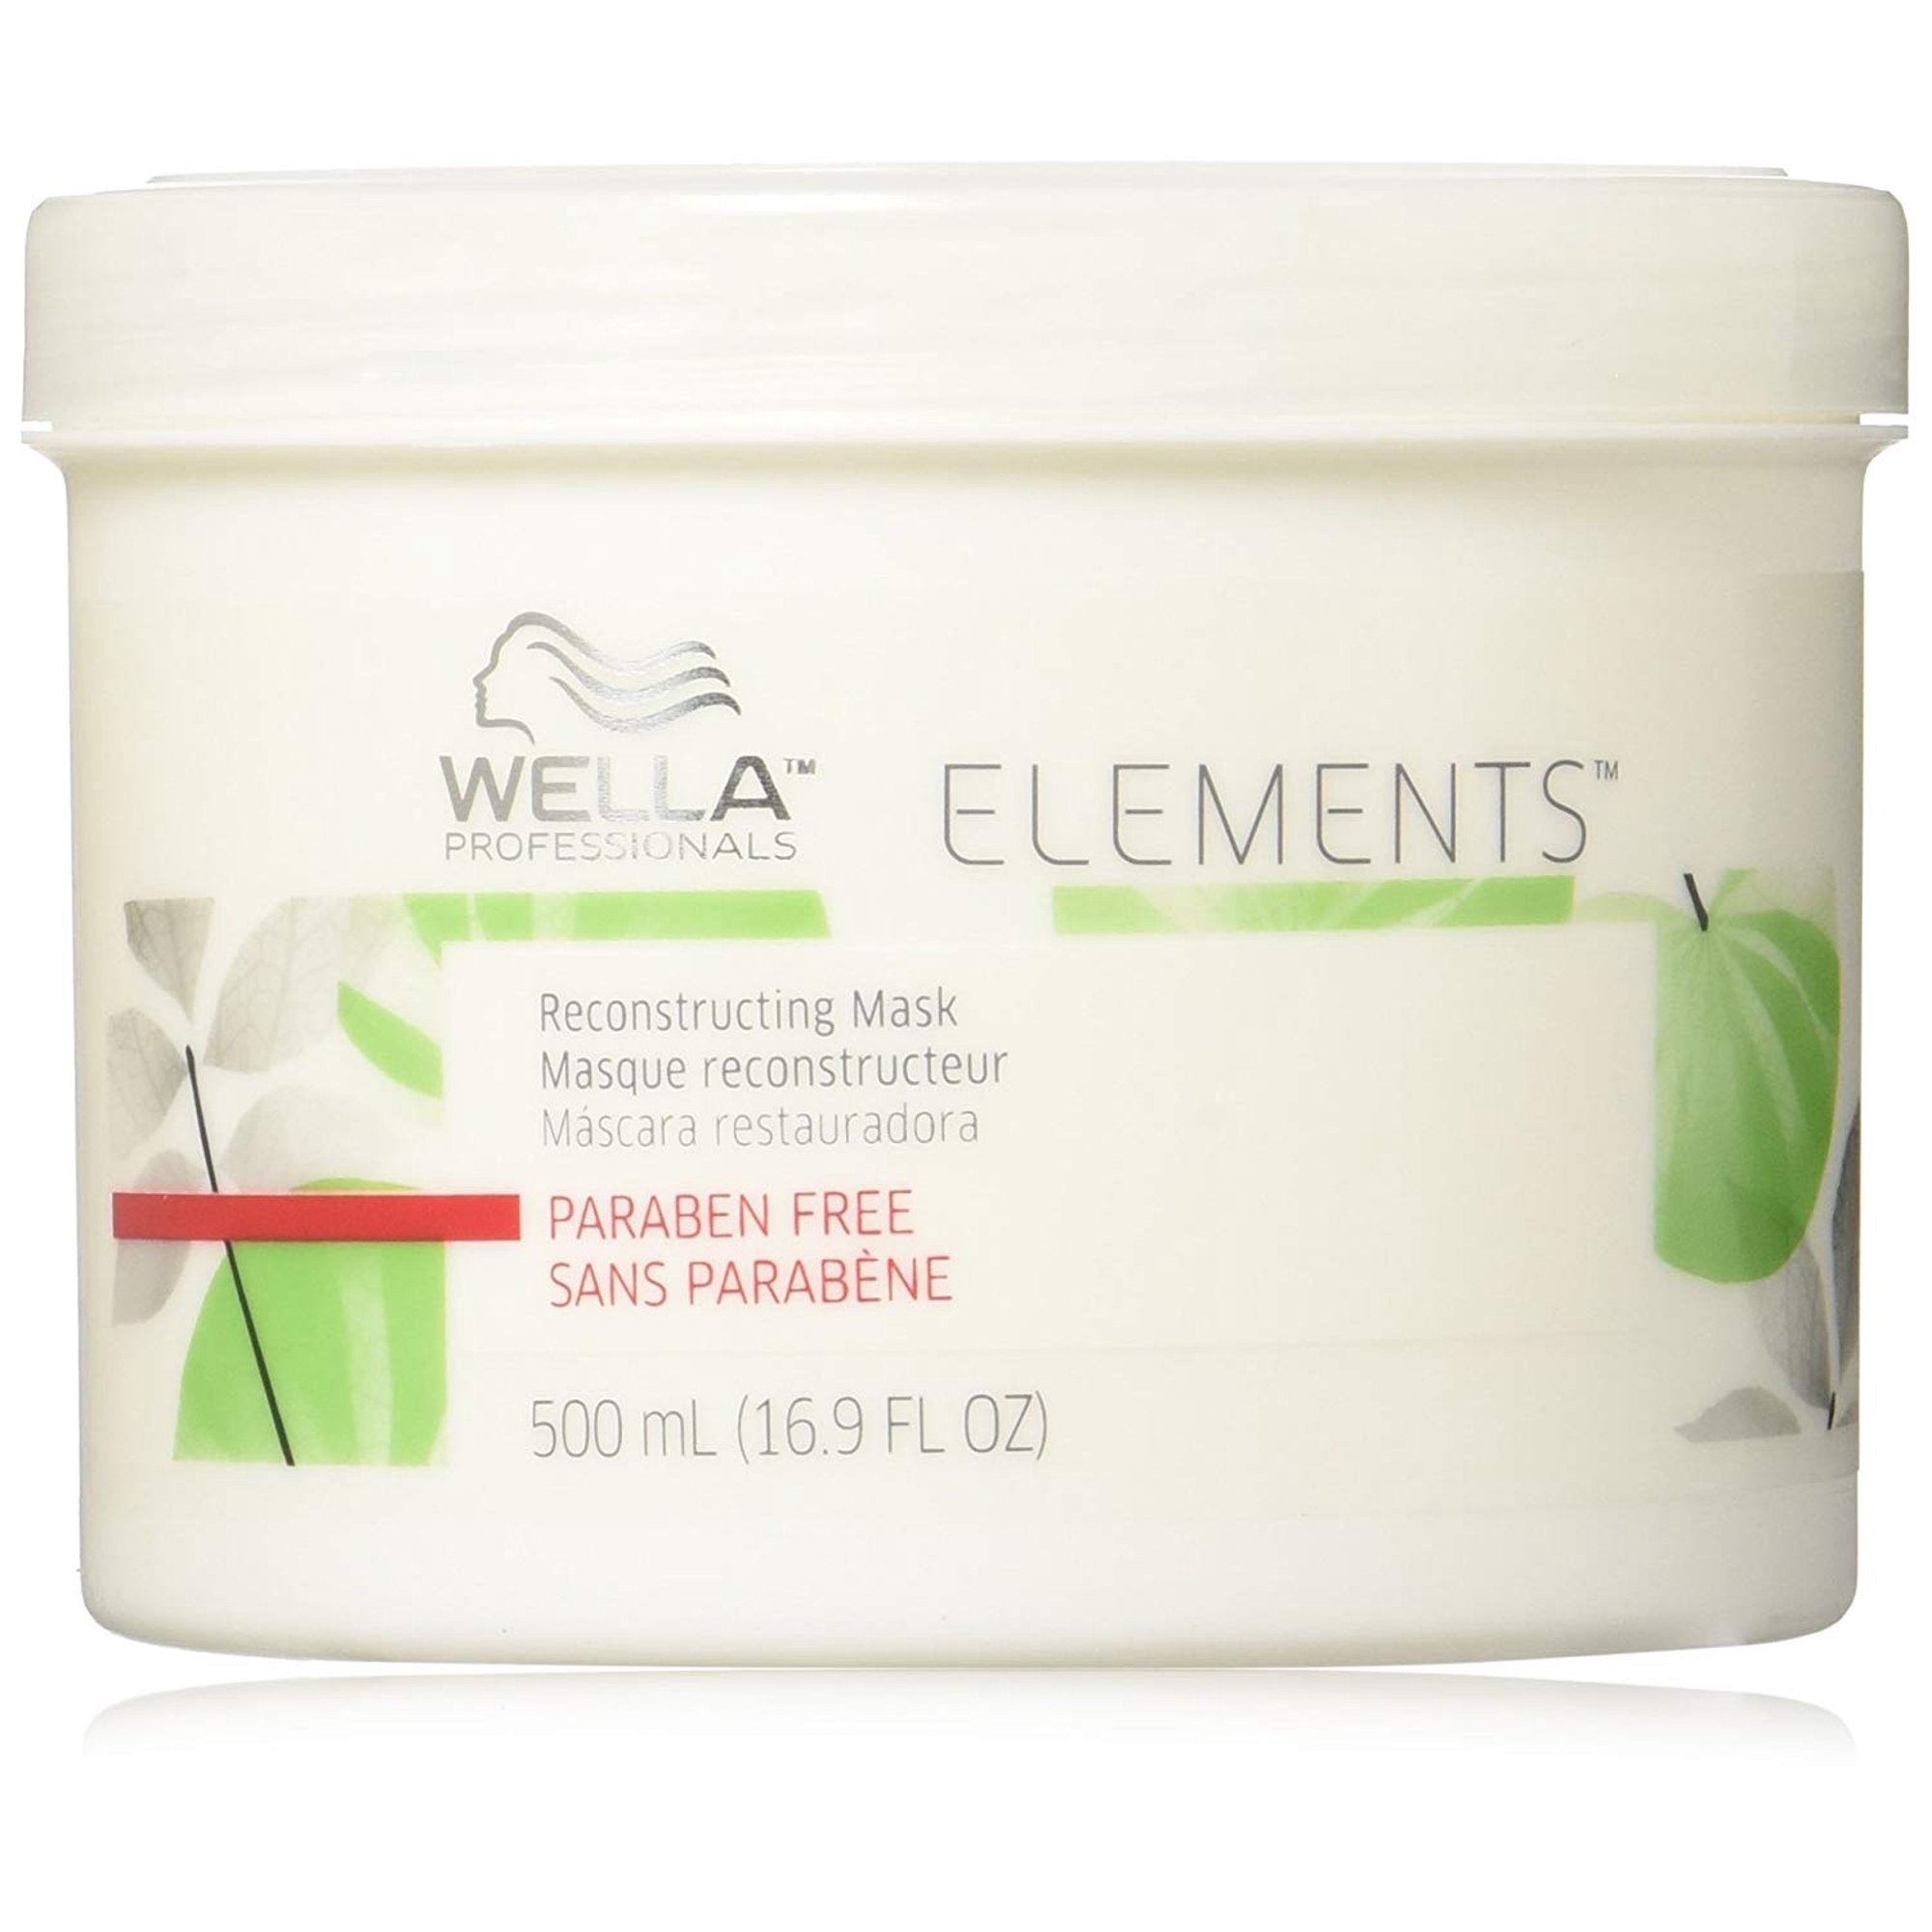 Wella Elements Reconstructing Mask Paraben-free 500ml